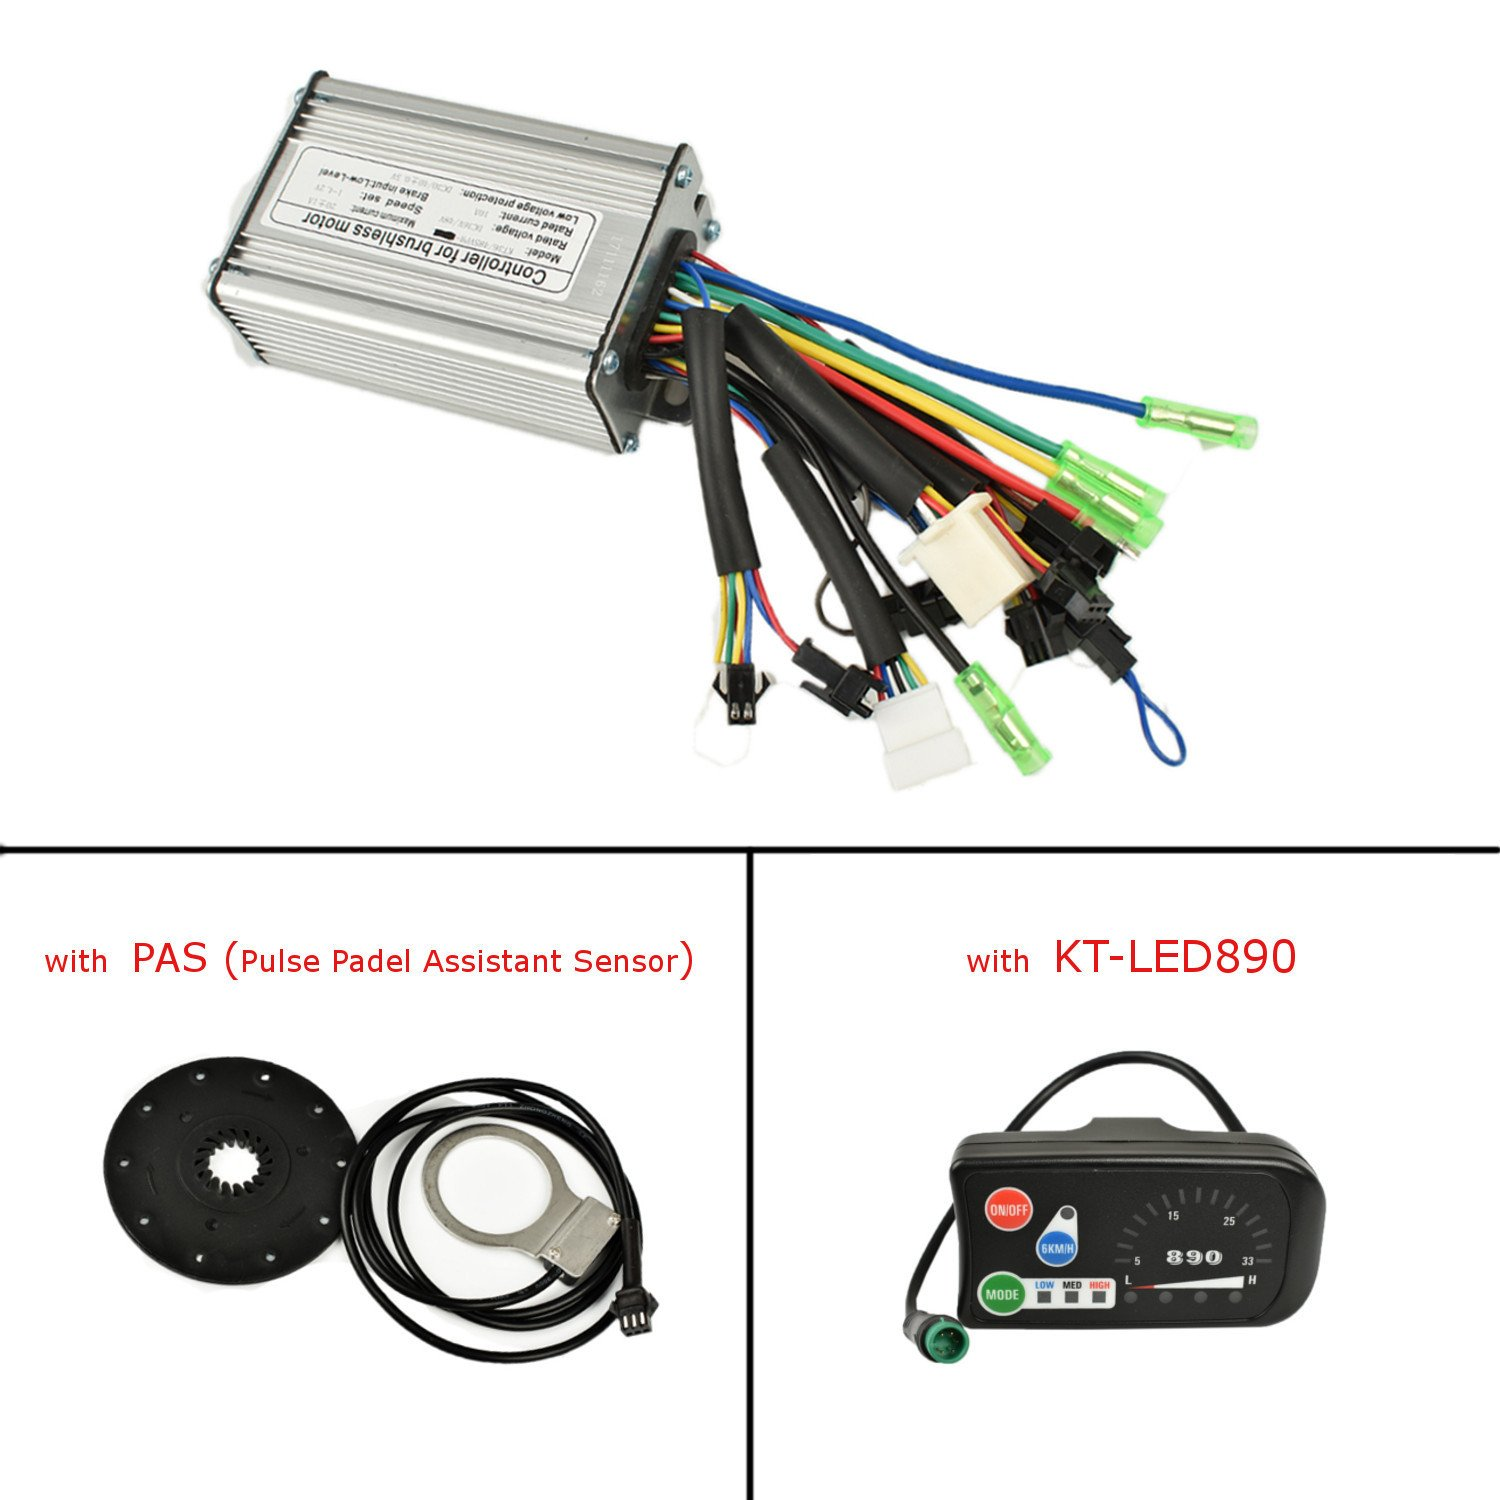 Pswpower 24 V 36 V 250 W 6 mosfets 15 A Brushless DC Sine Wave Controller mit kt-led890 LCD